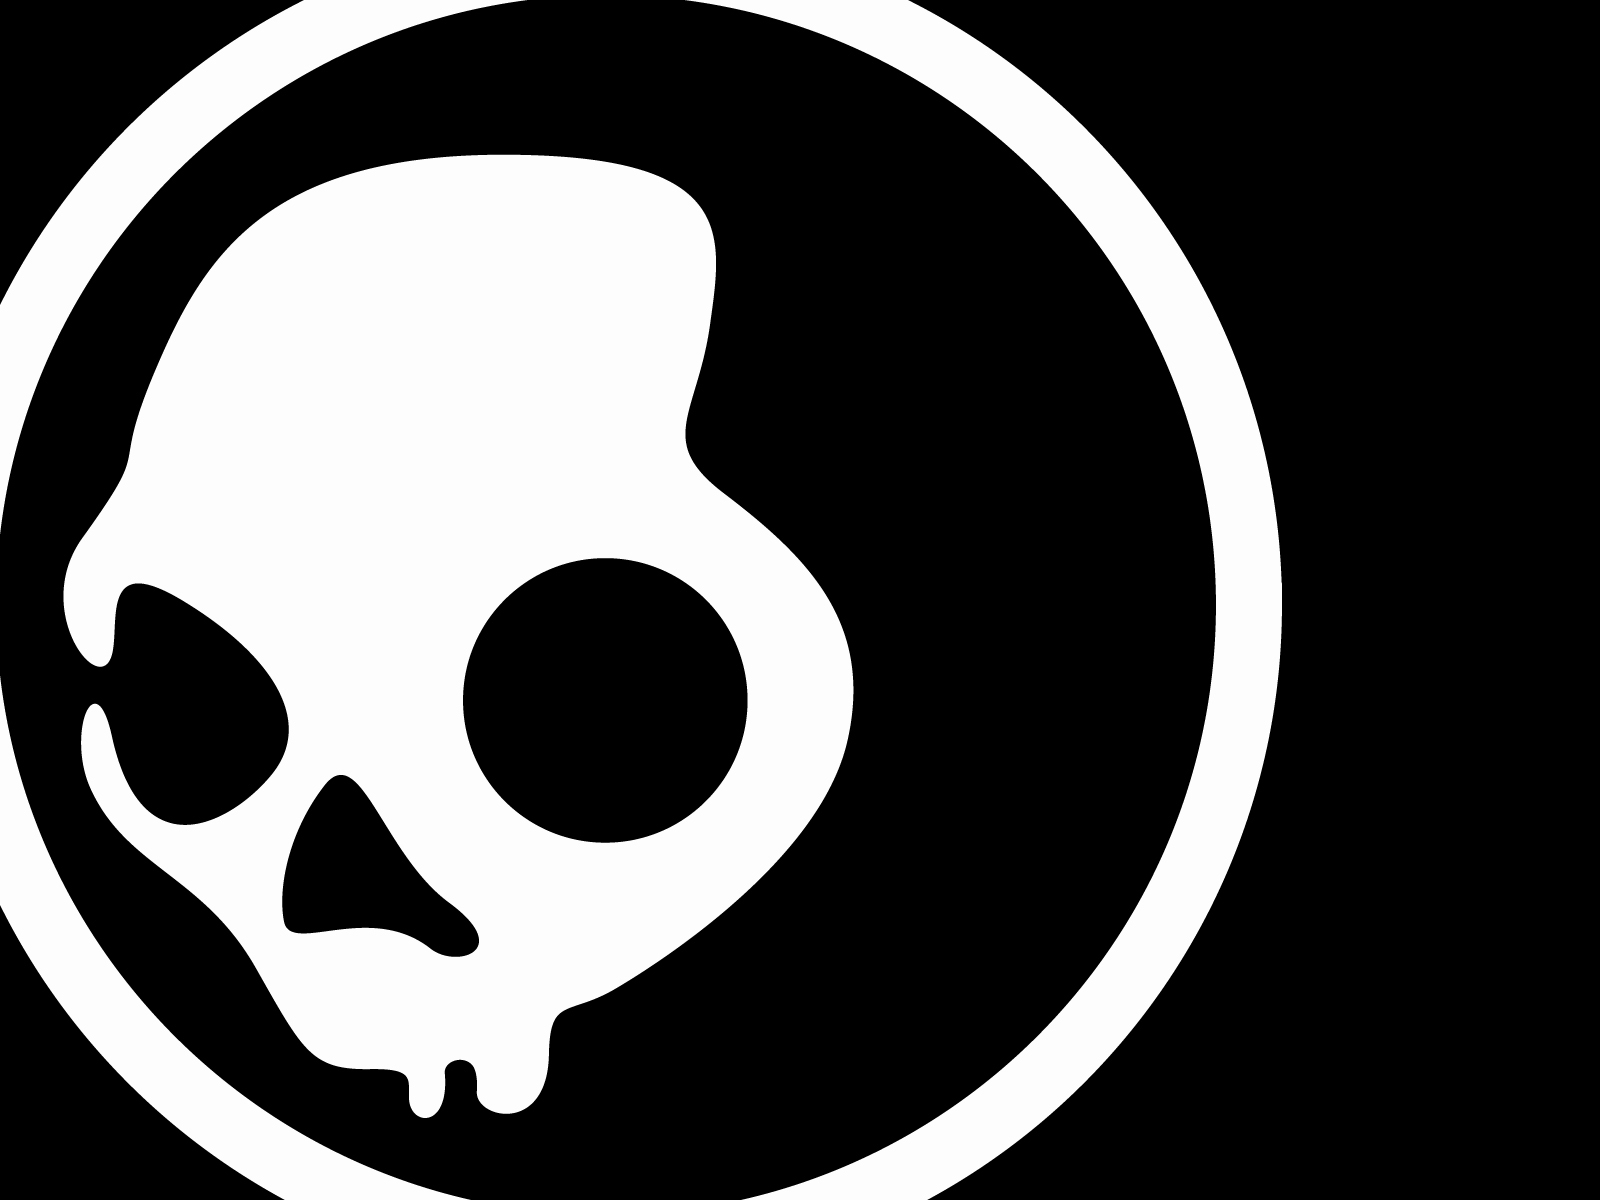 White skullcandy skull wallpapers white skullcandy skull myspace white skullcandy skull wallpapers white skullcandy skull myspace backgrounds white skullcandy skull backgrounds for myspace biocorpaavc Image collections